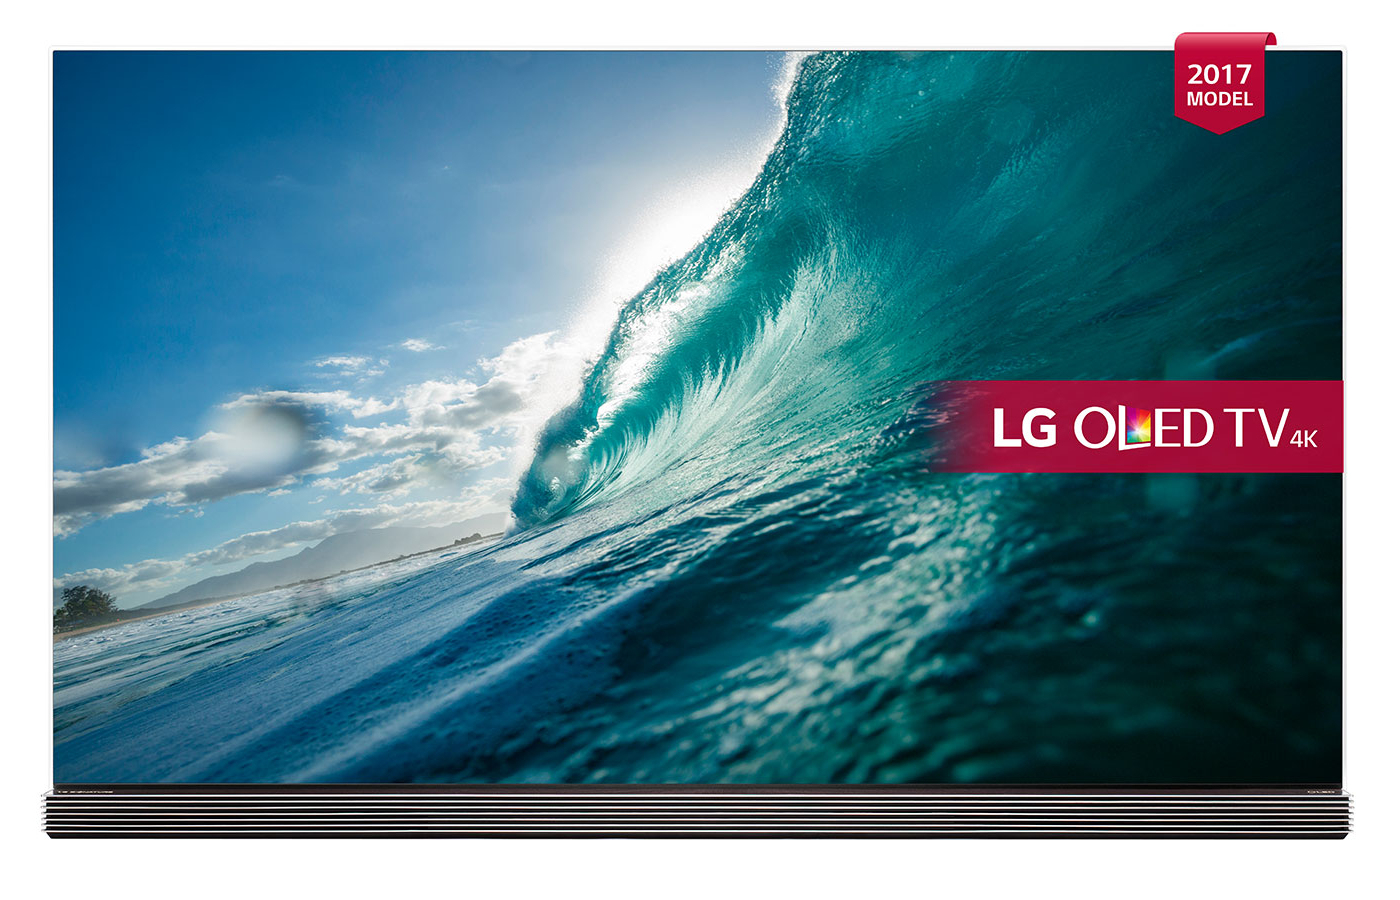 LG Signature OLED - 65 4K HDR SMART TV - Dolby Atmos  Wifi  4 x HDMI  3 x USB-Built in Soundbar